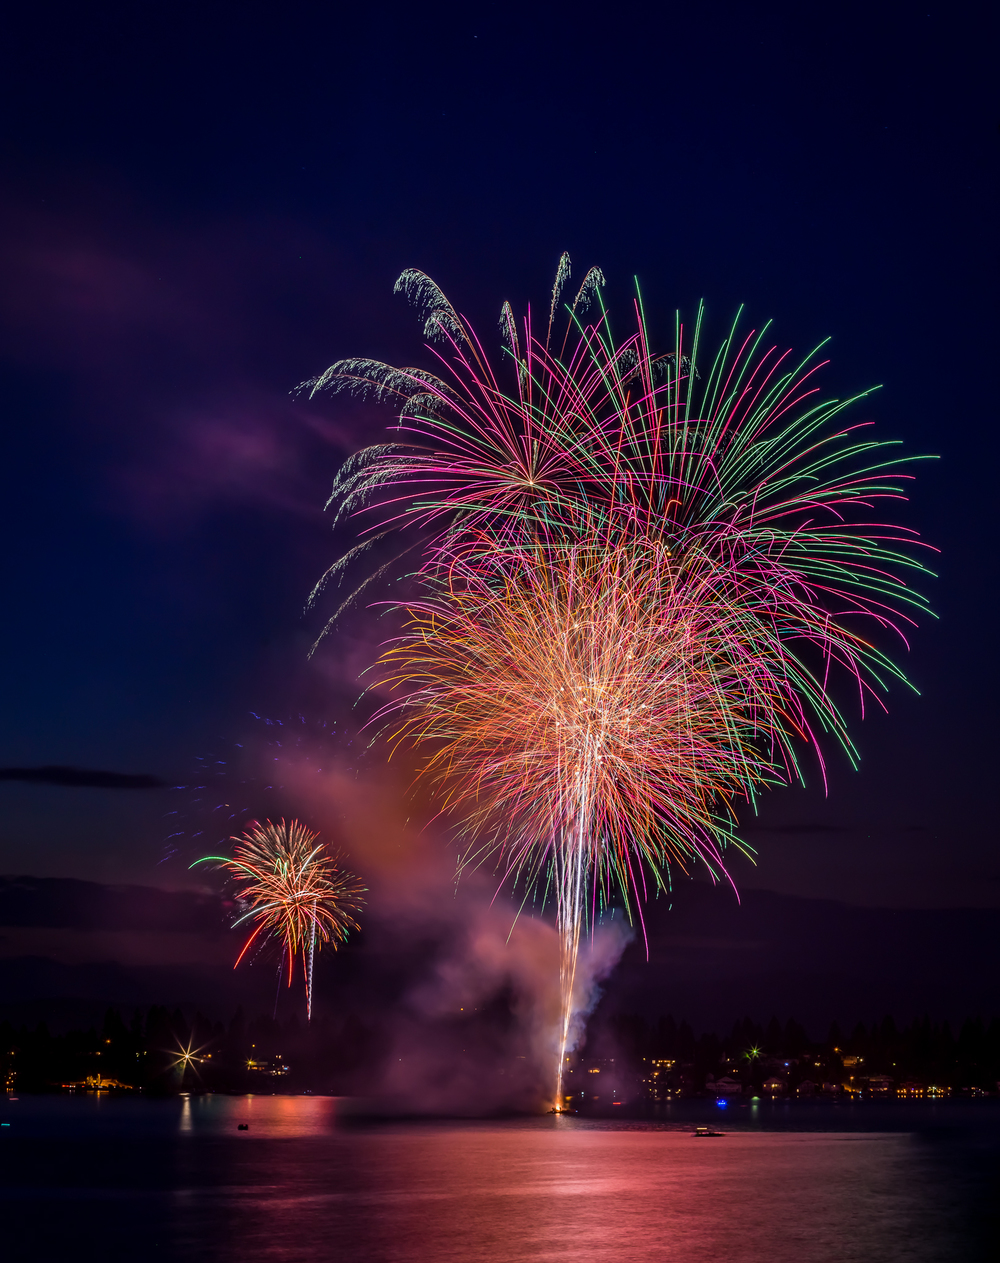 Fireworks over Liberty Lake, Washington July 4th, 2015